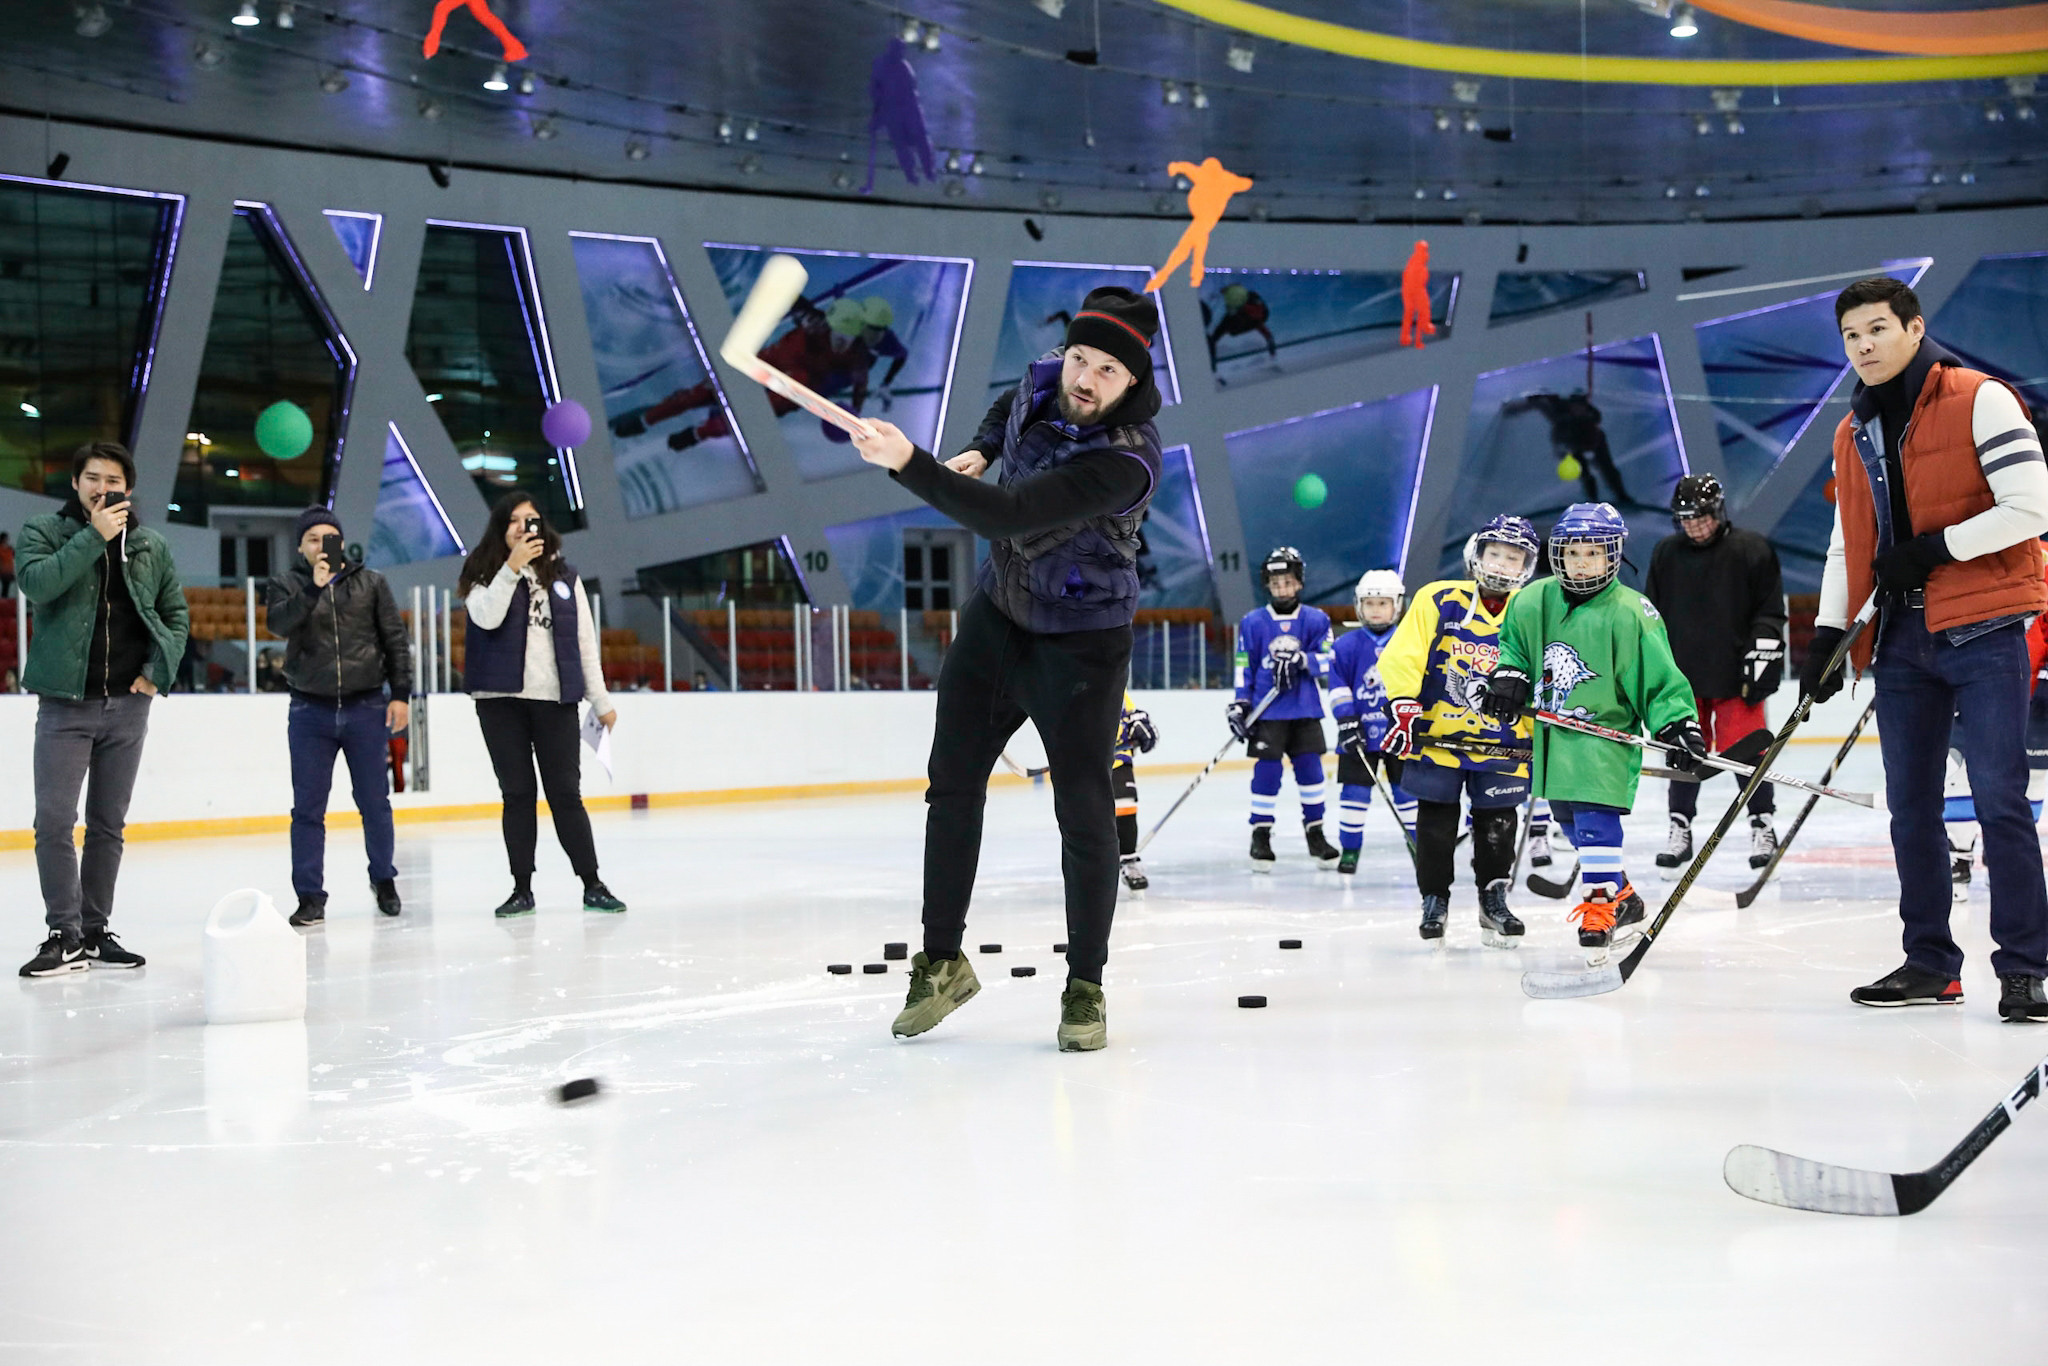 Athletes from summer and winter sports participated in the festivities ©National Olympic Committee of Republic of Kazakhstan